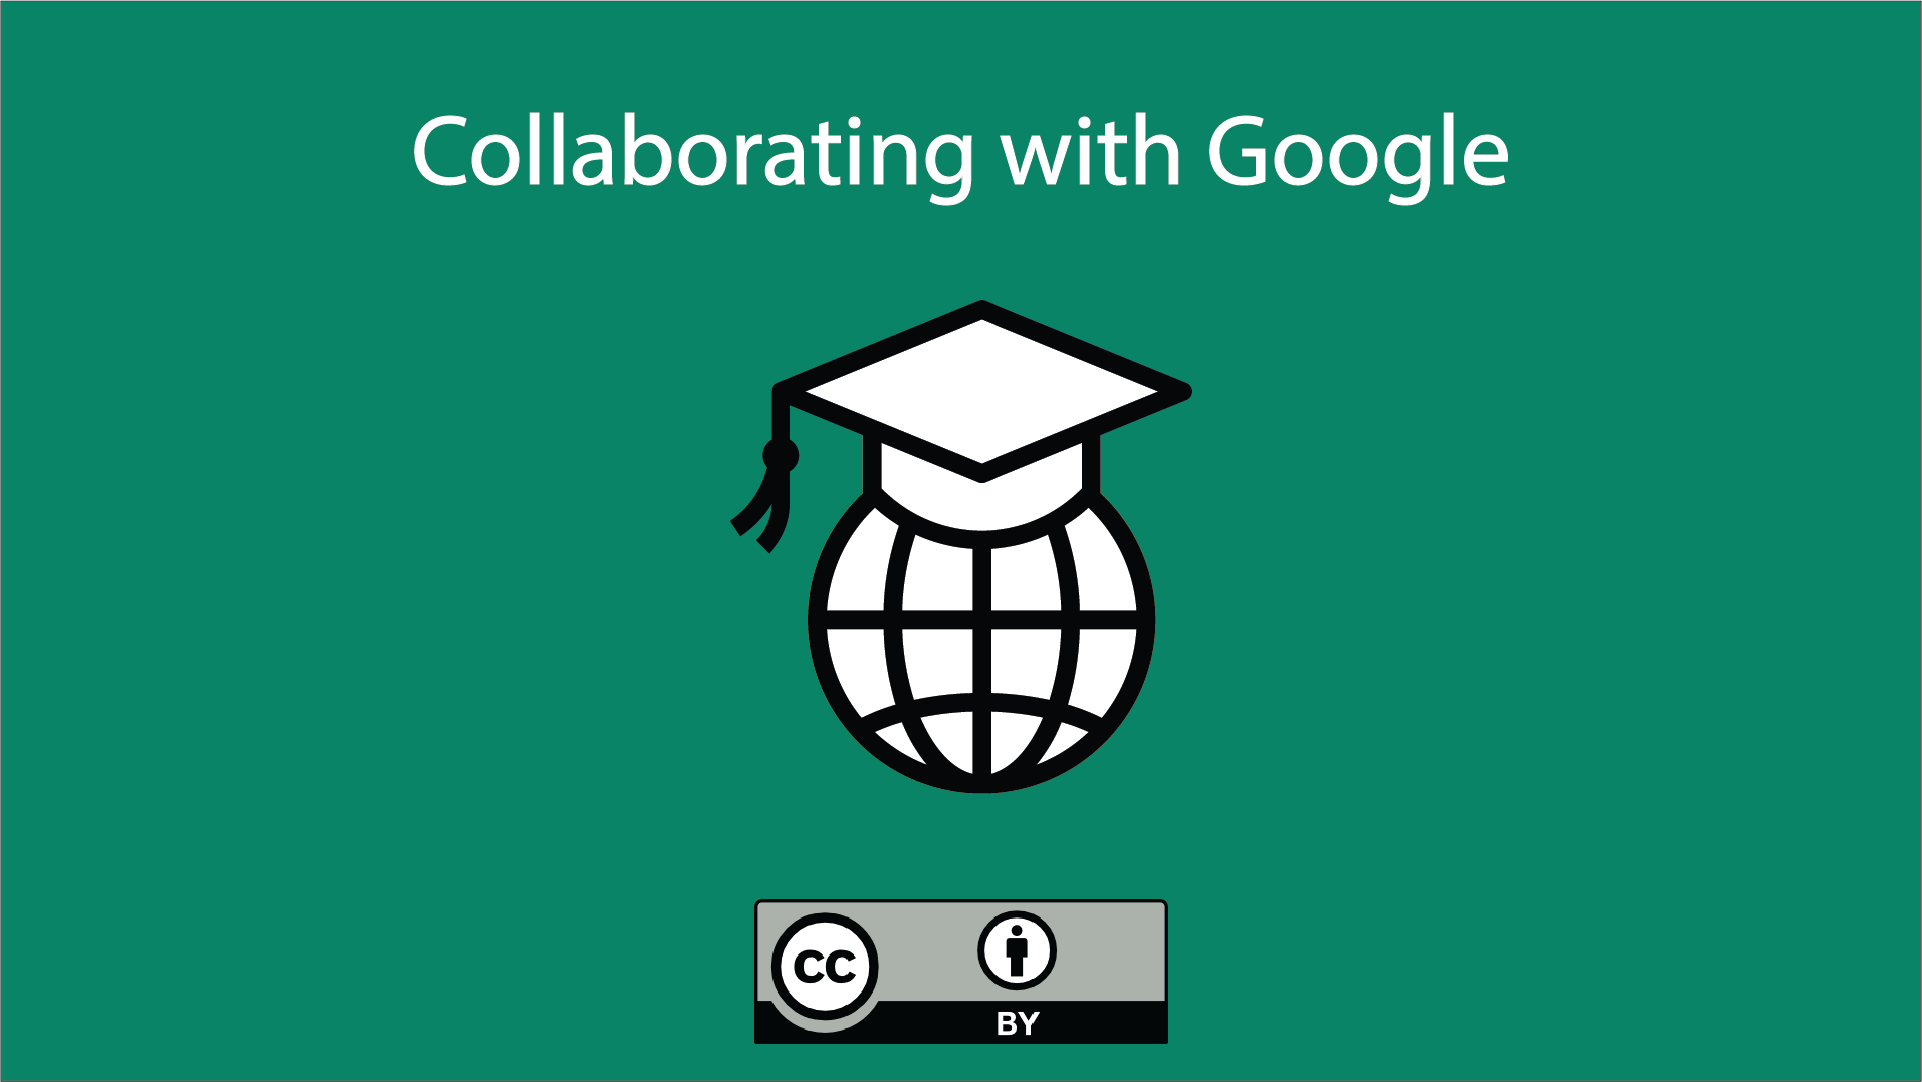 Collaborating with Google